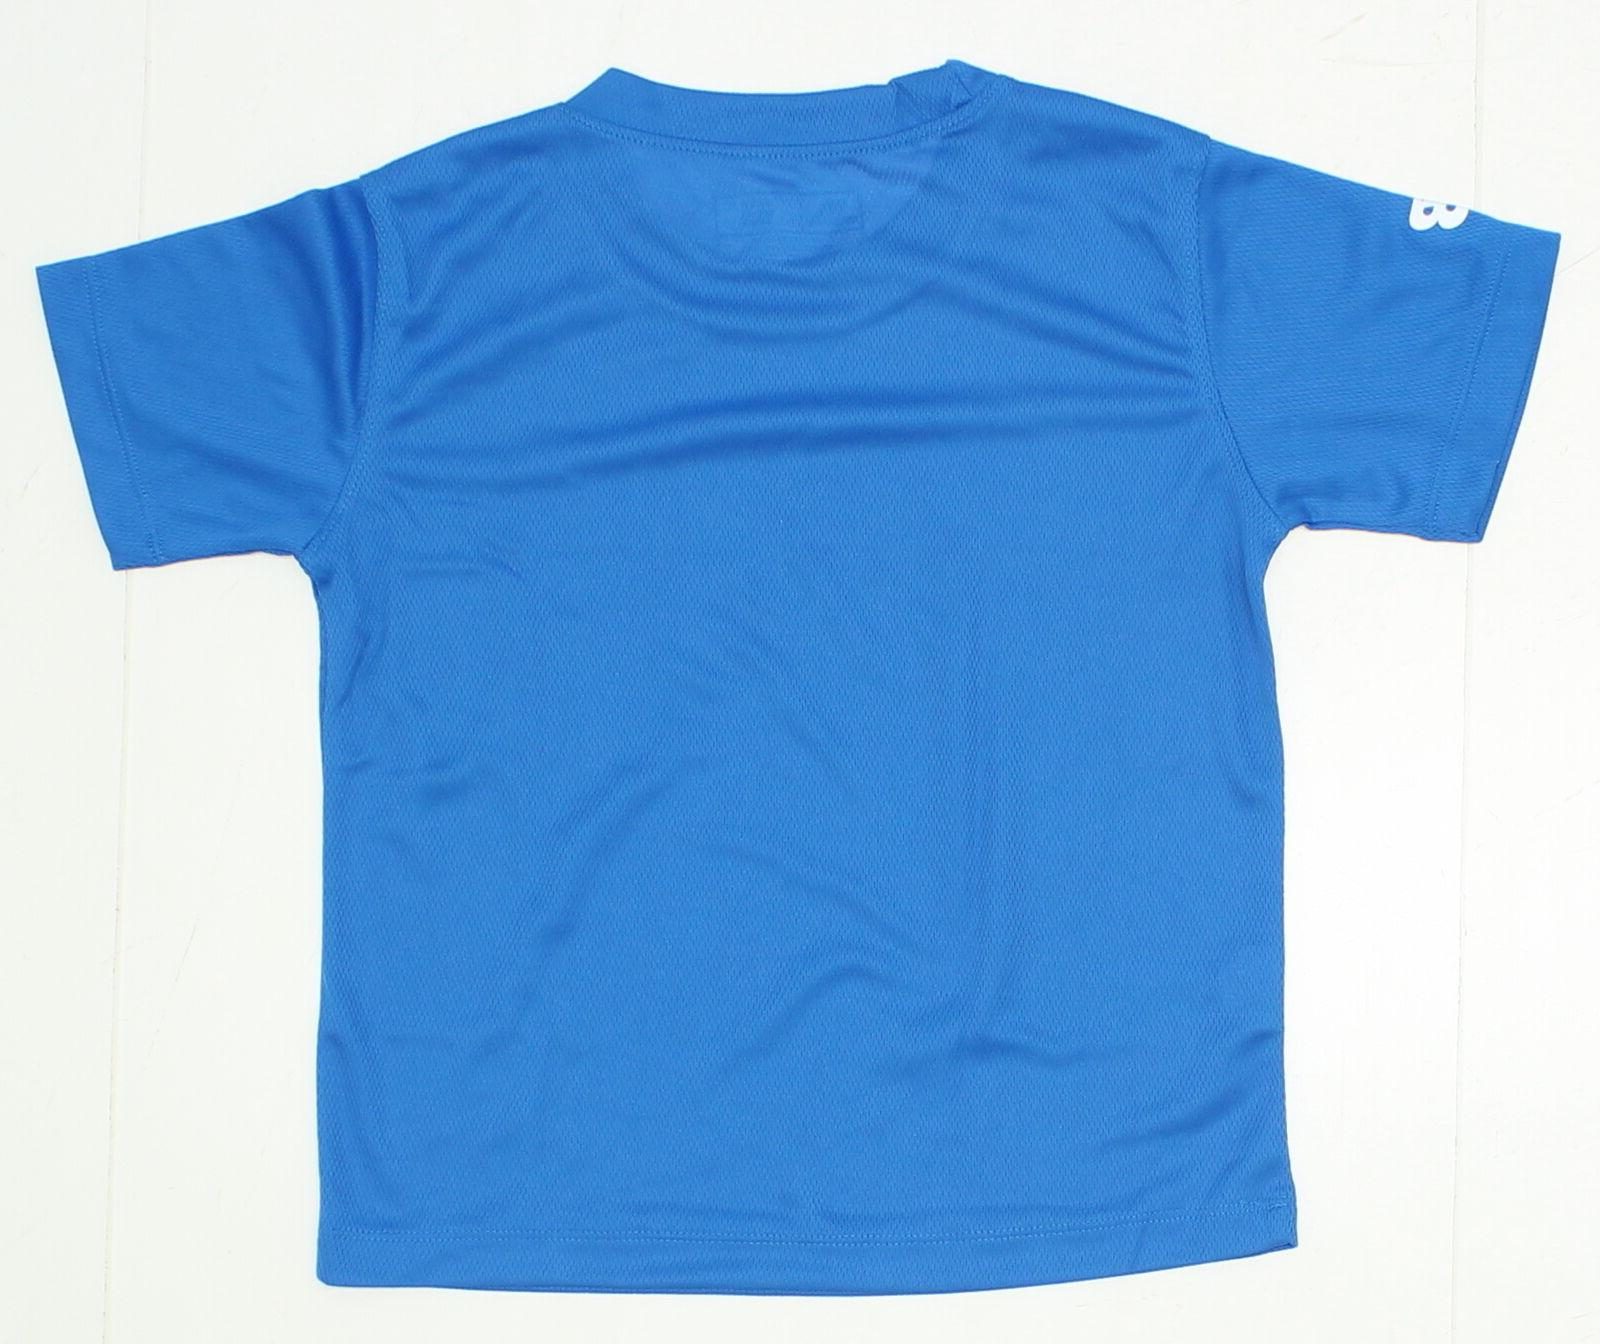 NEW New Performance Tee Blue 02846